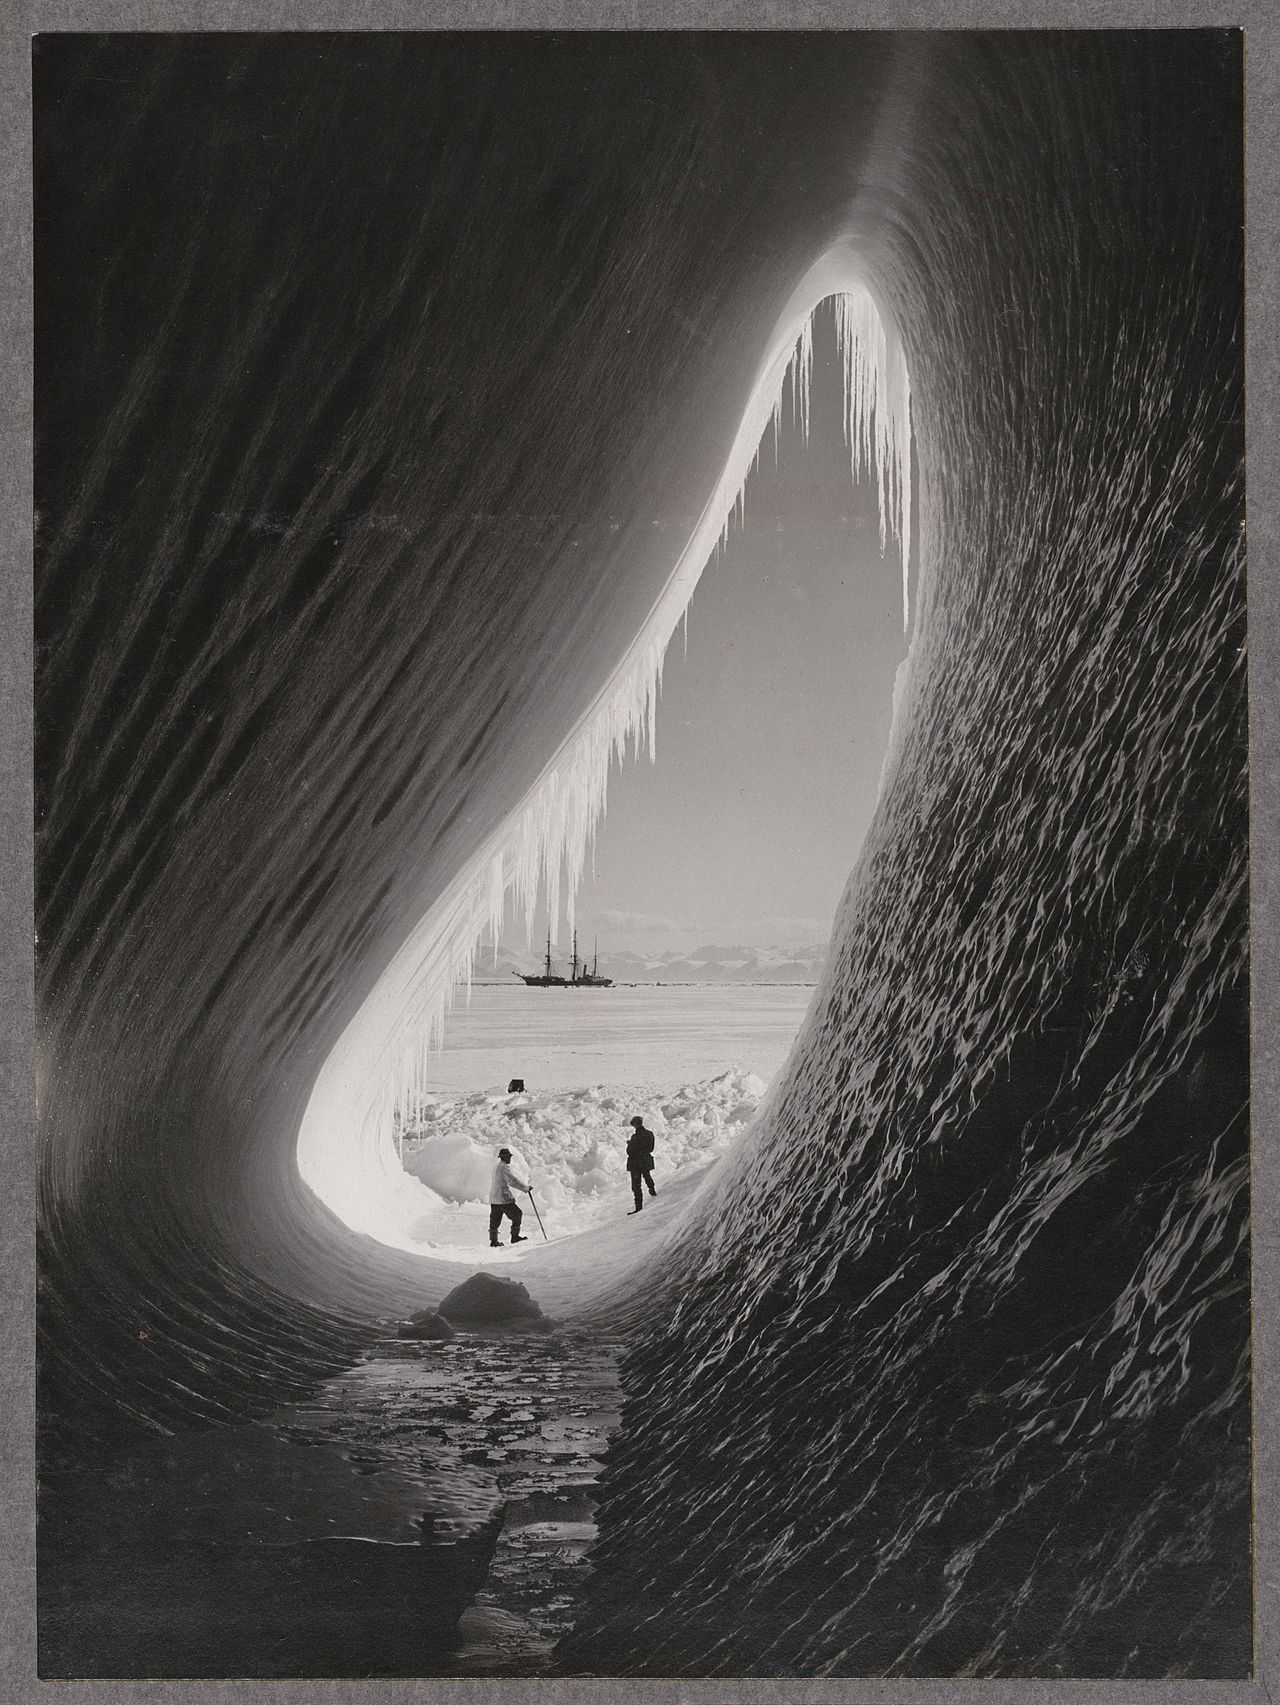 Grotto in an iceberg, 5 January 1911, taken by a member of Scott's team. Credit: Herbert Ponting/National Library of New Zealand.